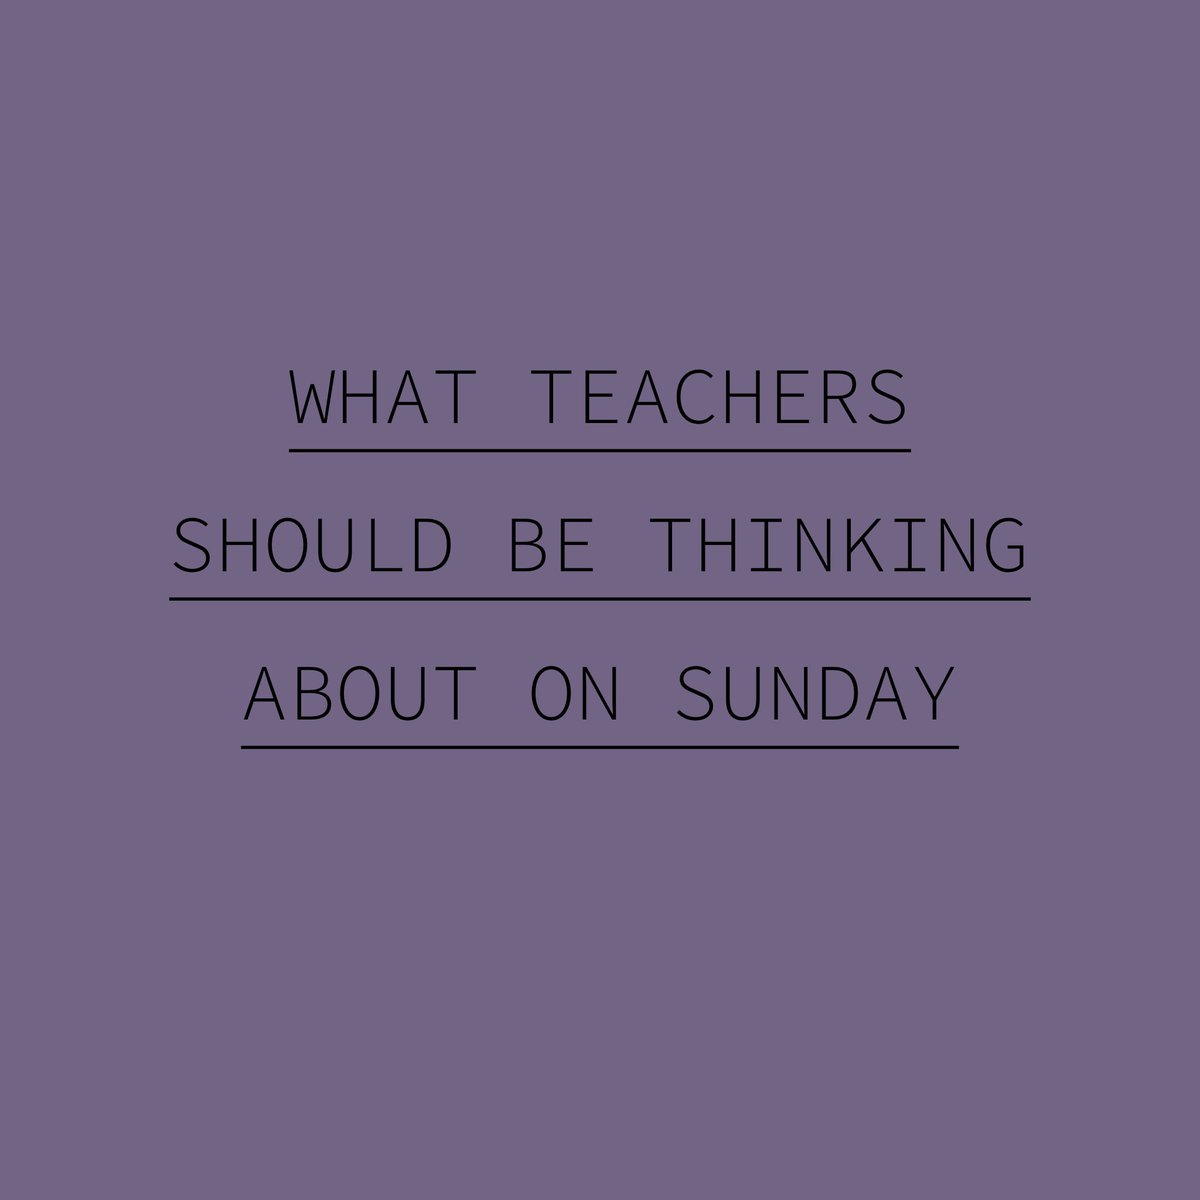 What Teachers Should Be Thinking About on Sunday jonharper.blog/2019/09/09/wha… #SundayMotivation